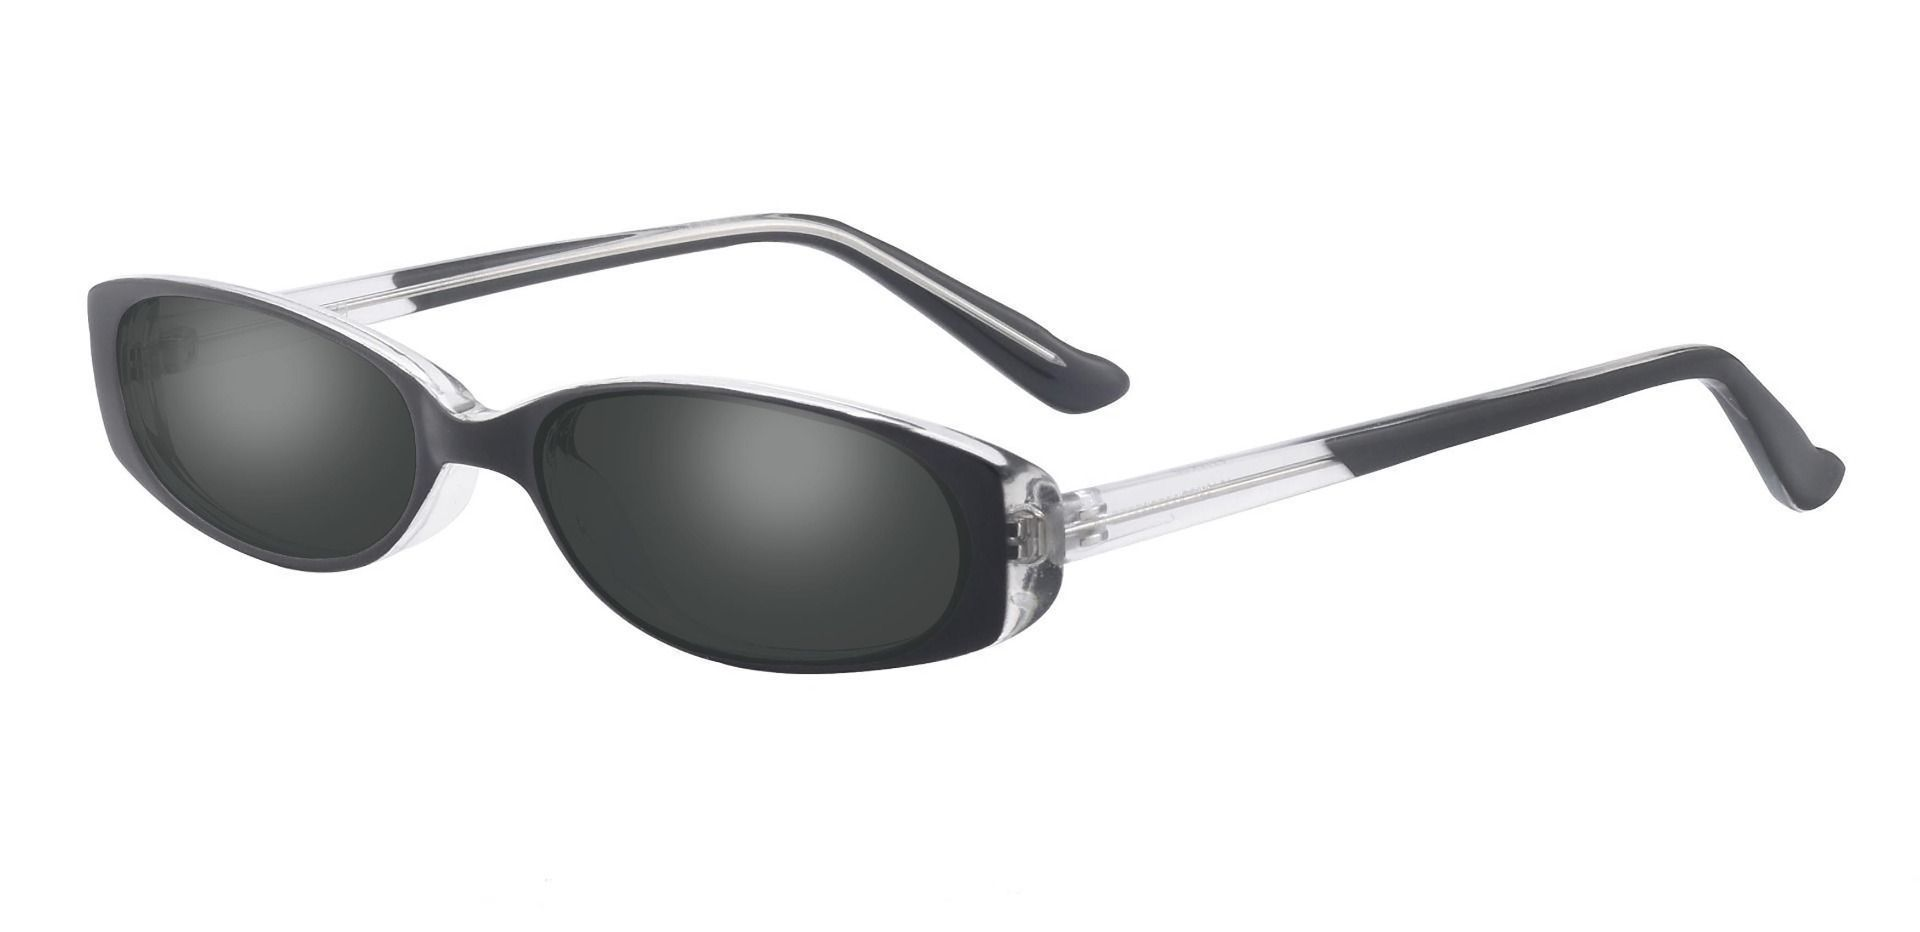 Venetia Oval Single Vision Sunglasses - Black Frame With Gray Lenses